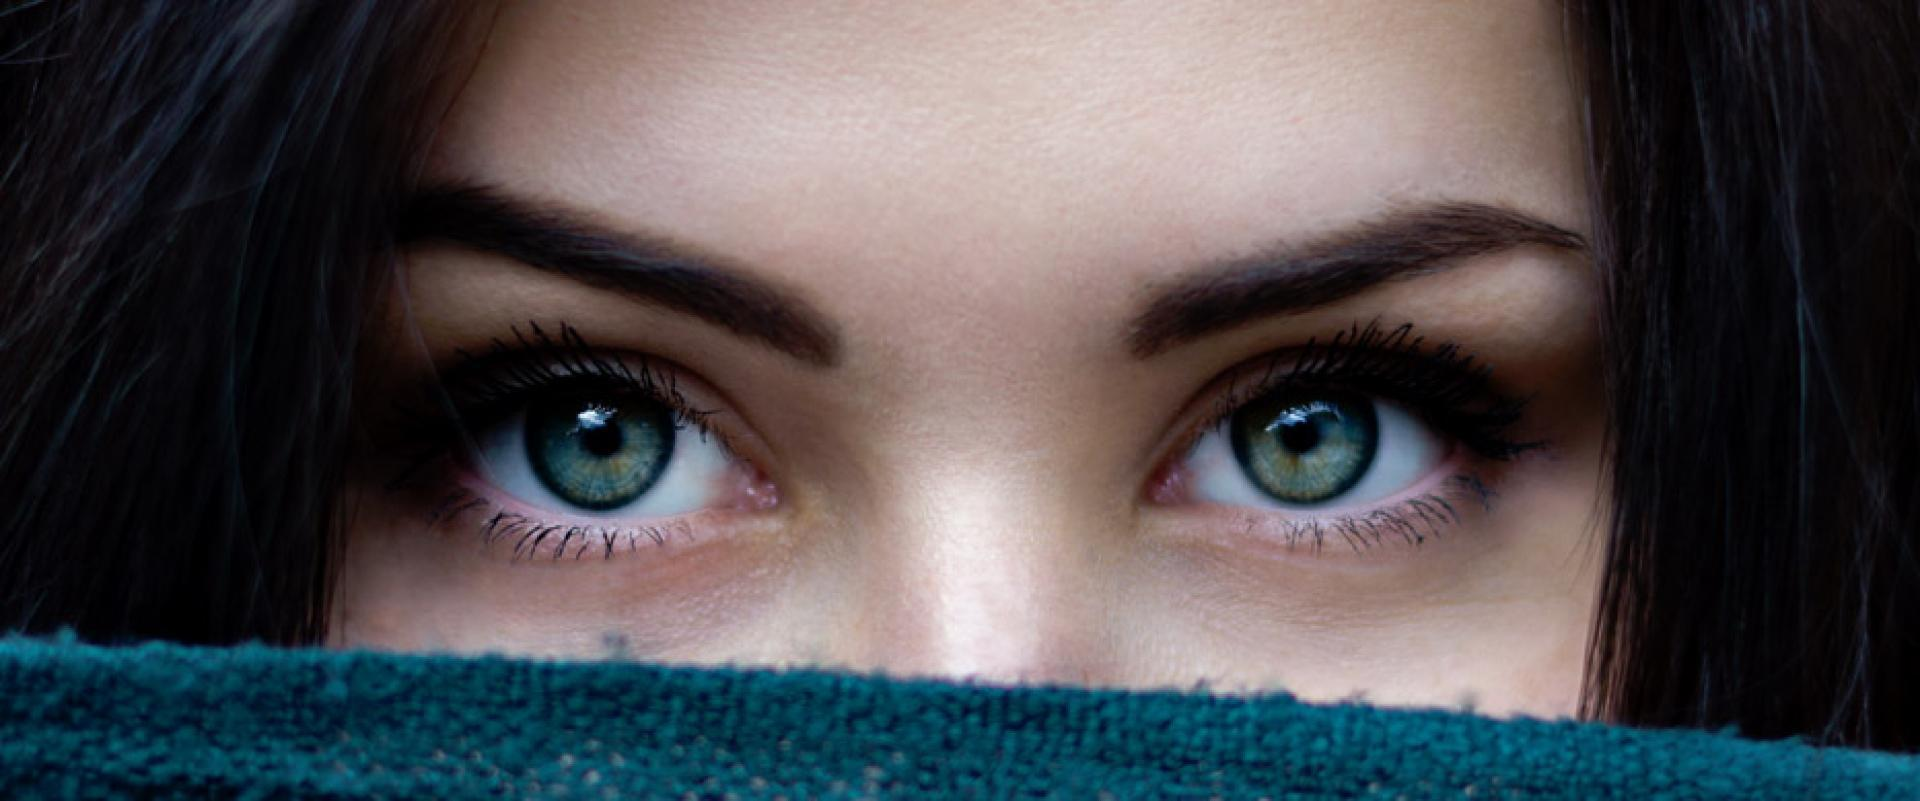 How To Grow Full Healthy Eyebrows Mane Image Hair